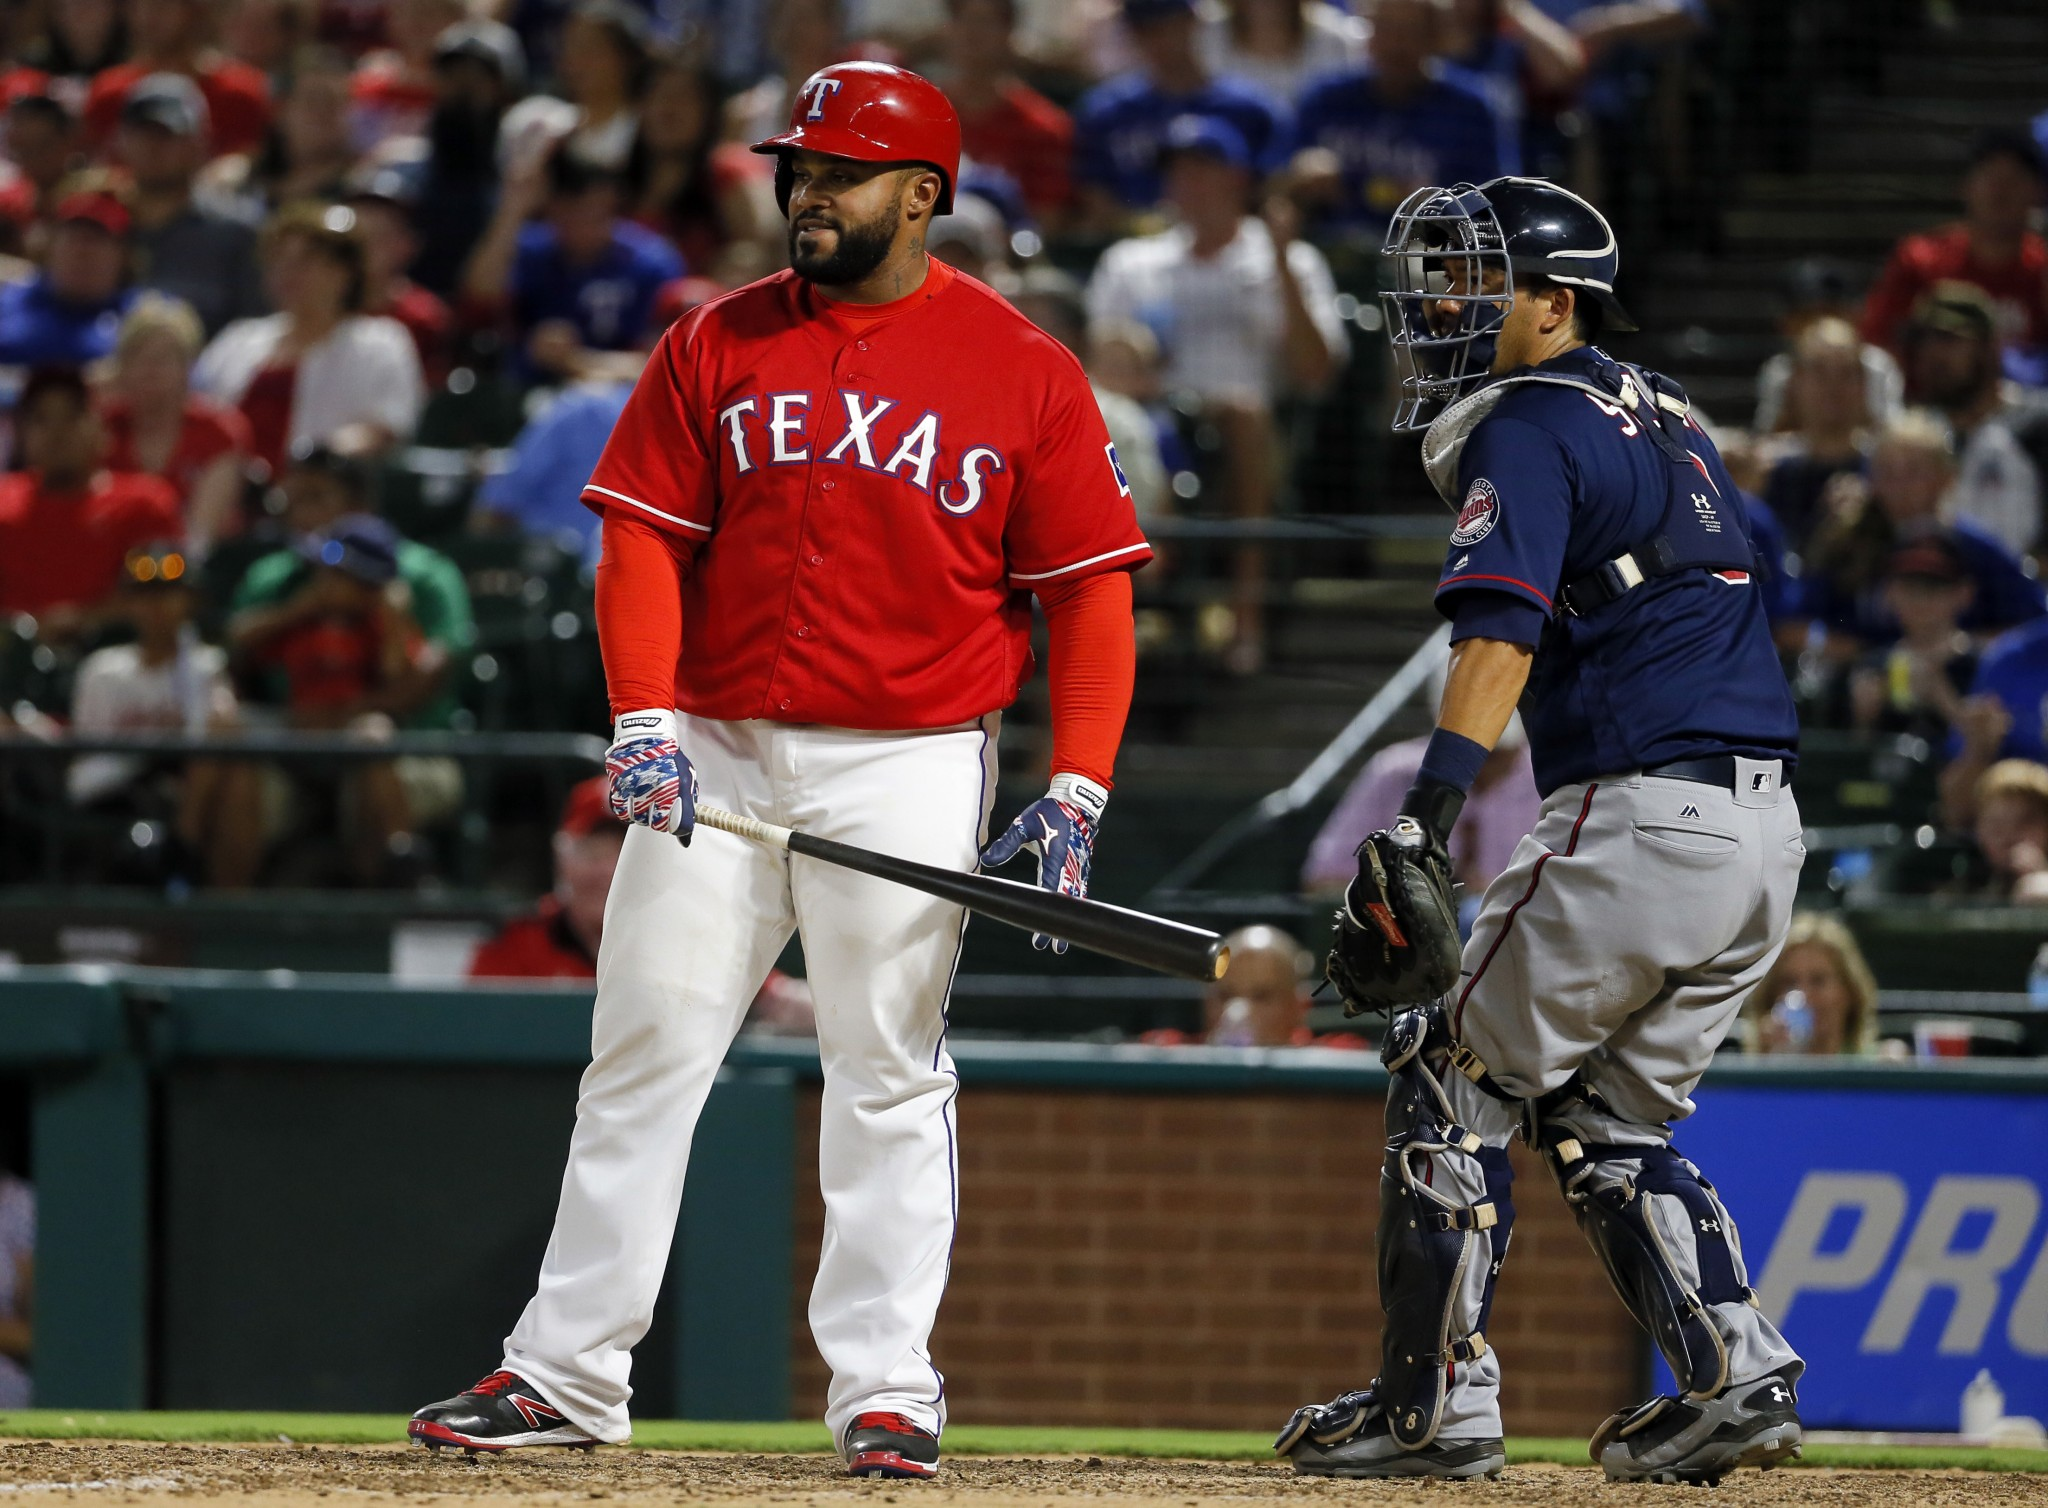 Watch the Rangers and A's in Free MLB Game of the Day